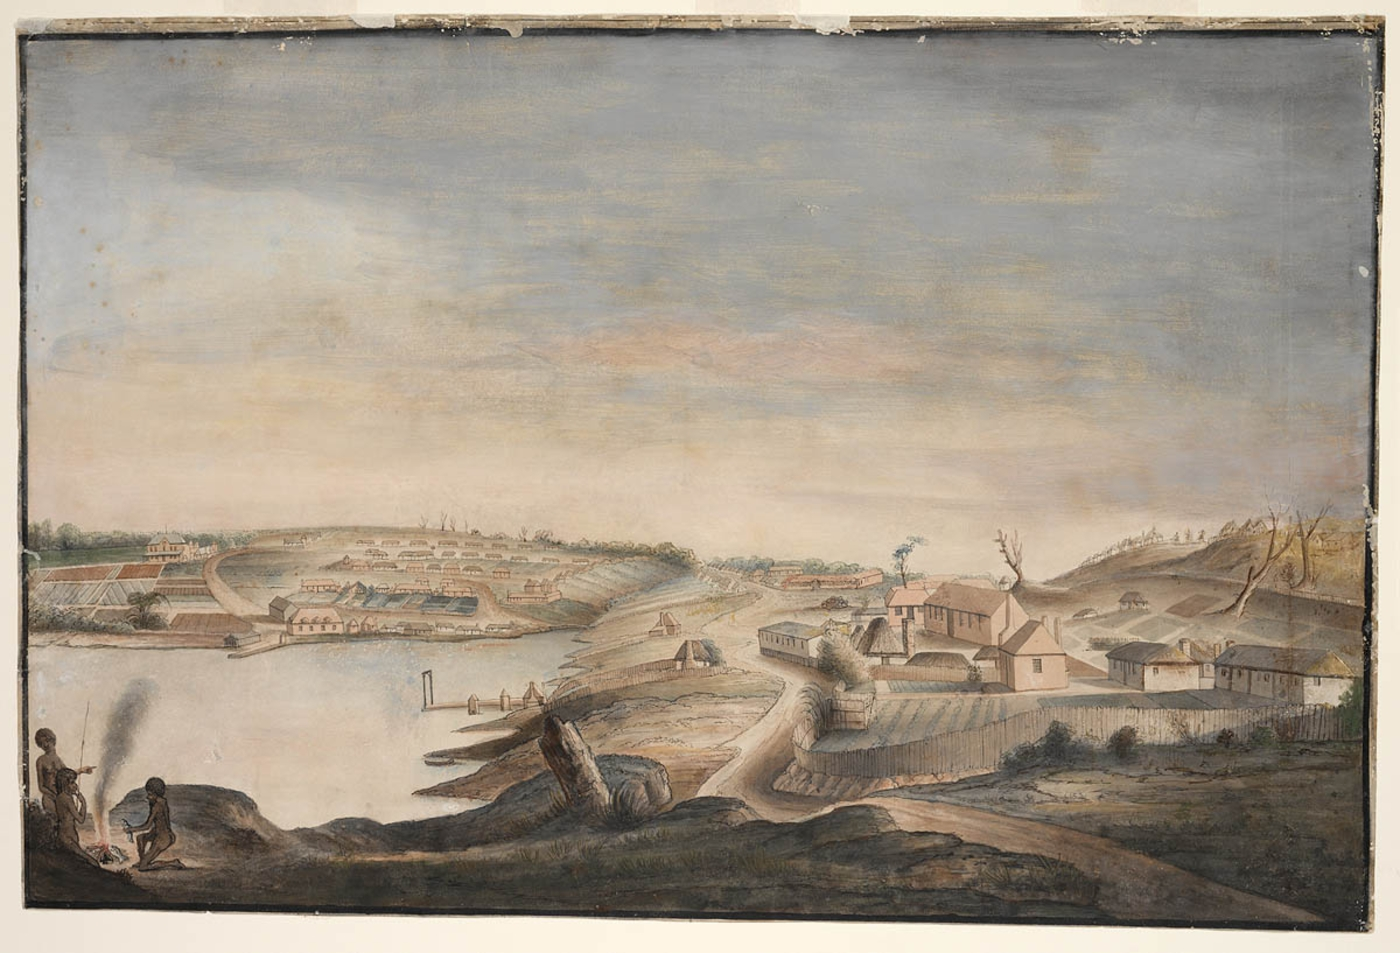 Artwork of a view of a settlement around a bay and with a small group of people around a fire in the foreground.